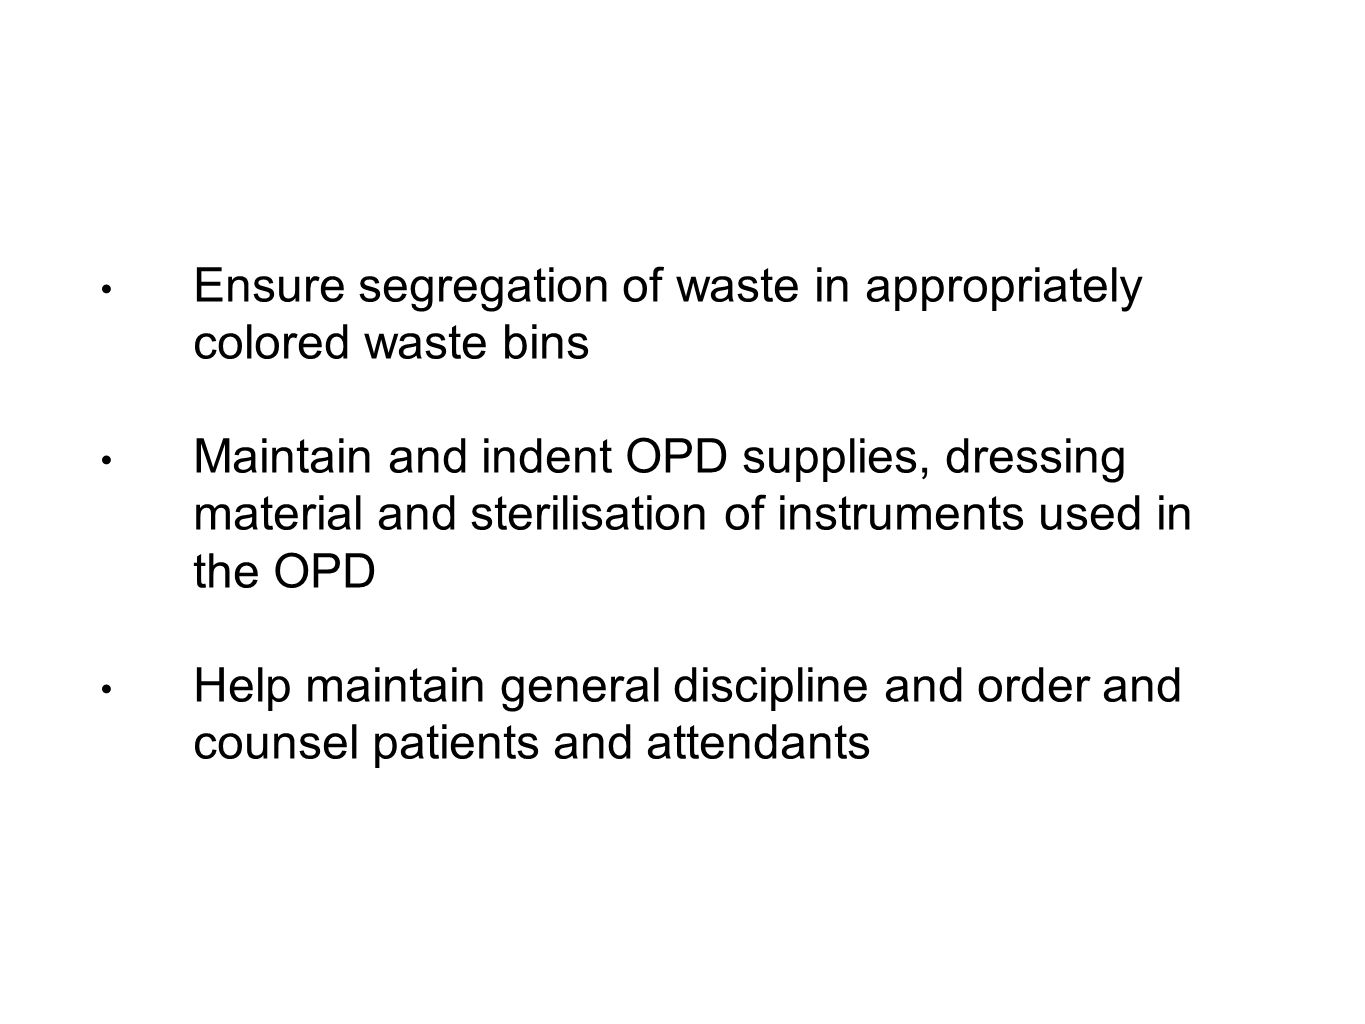 Ensure segregation of waste in appropriately colored waste bins